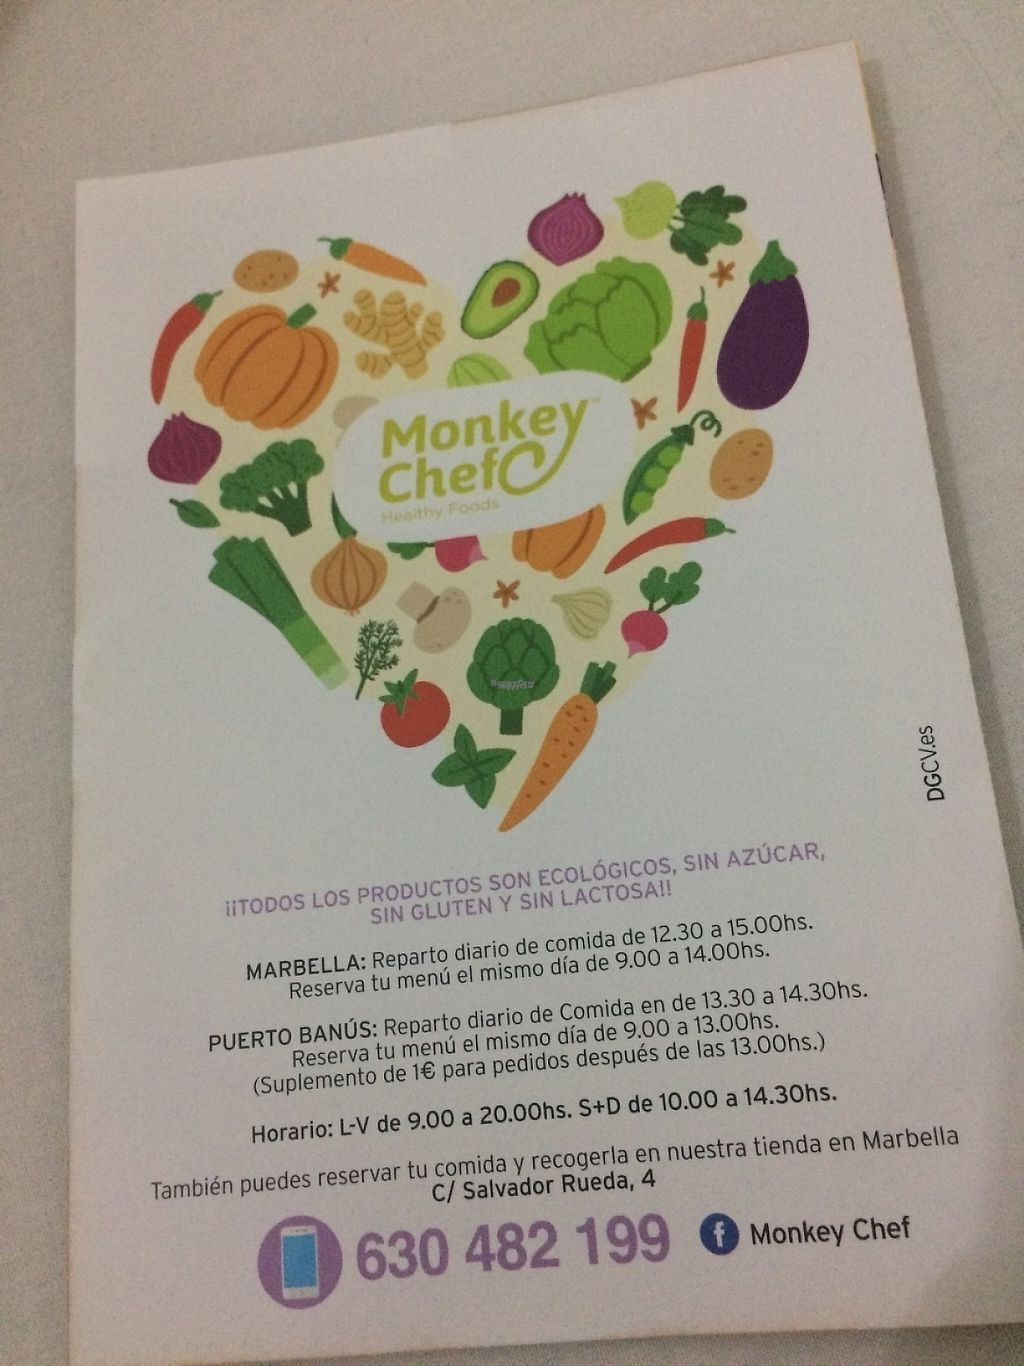 """Photo of CLOSED: Monkey Chef  by <a href=""""/members/profile/pauletam"""">pauletam</a> <br/>Leaflet <br/> April 13, 2017  - <a href='/contact/abuse/image/90369/247689'>Report</a>"""